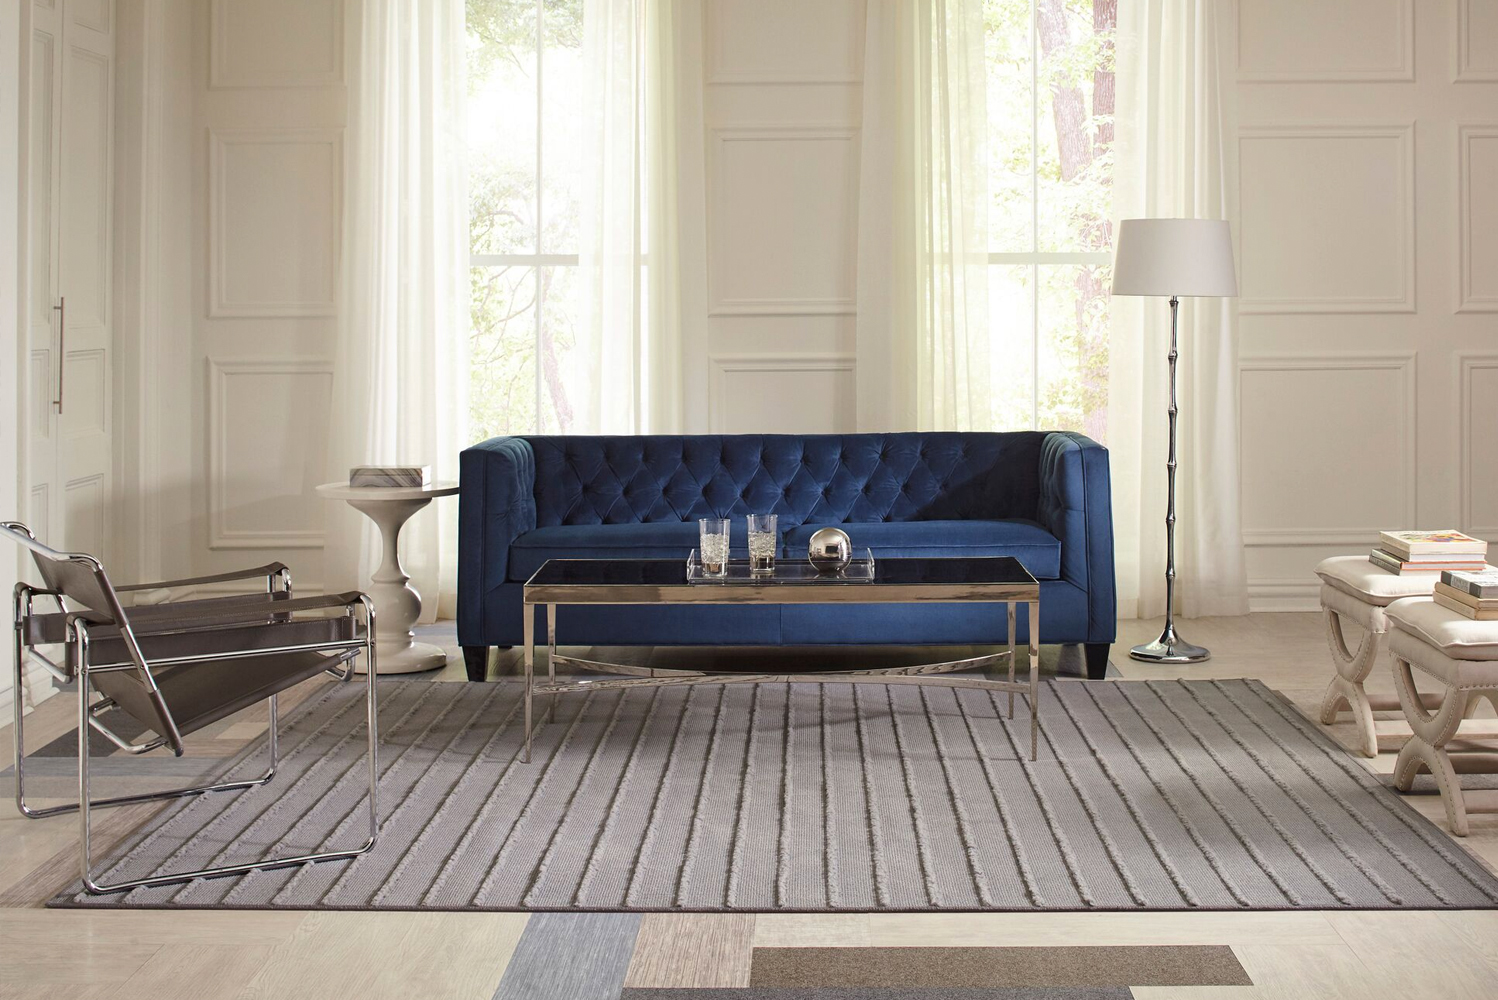 Tarkett launched the Woven Fringe Collection.